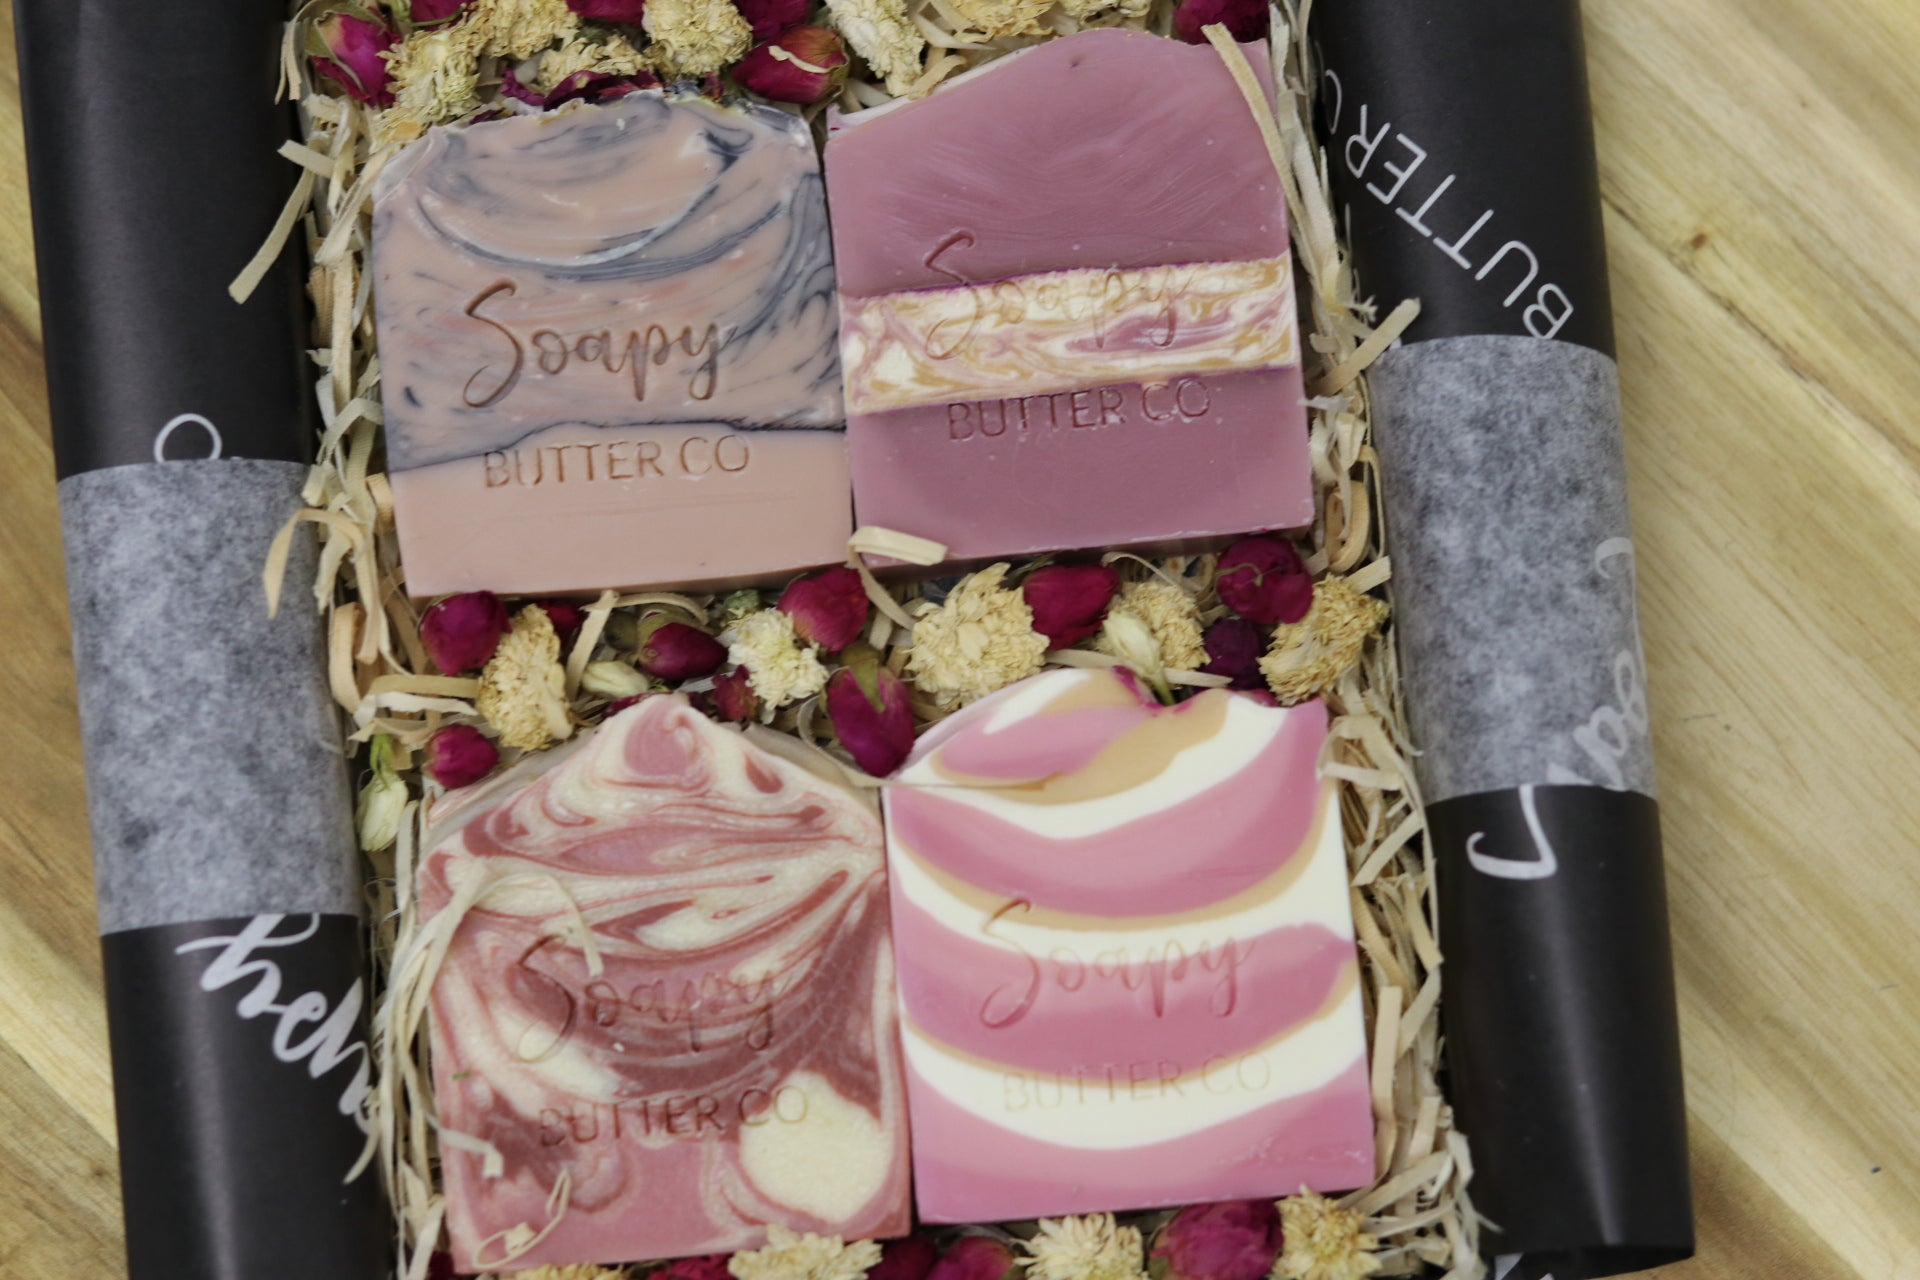 Soapy Butter Co Melbourne Soap Gift Pack